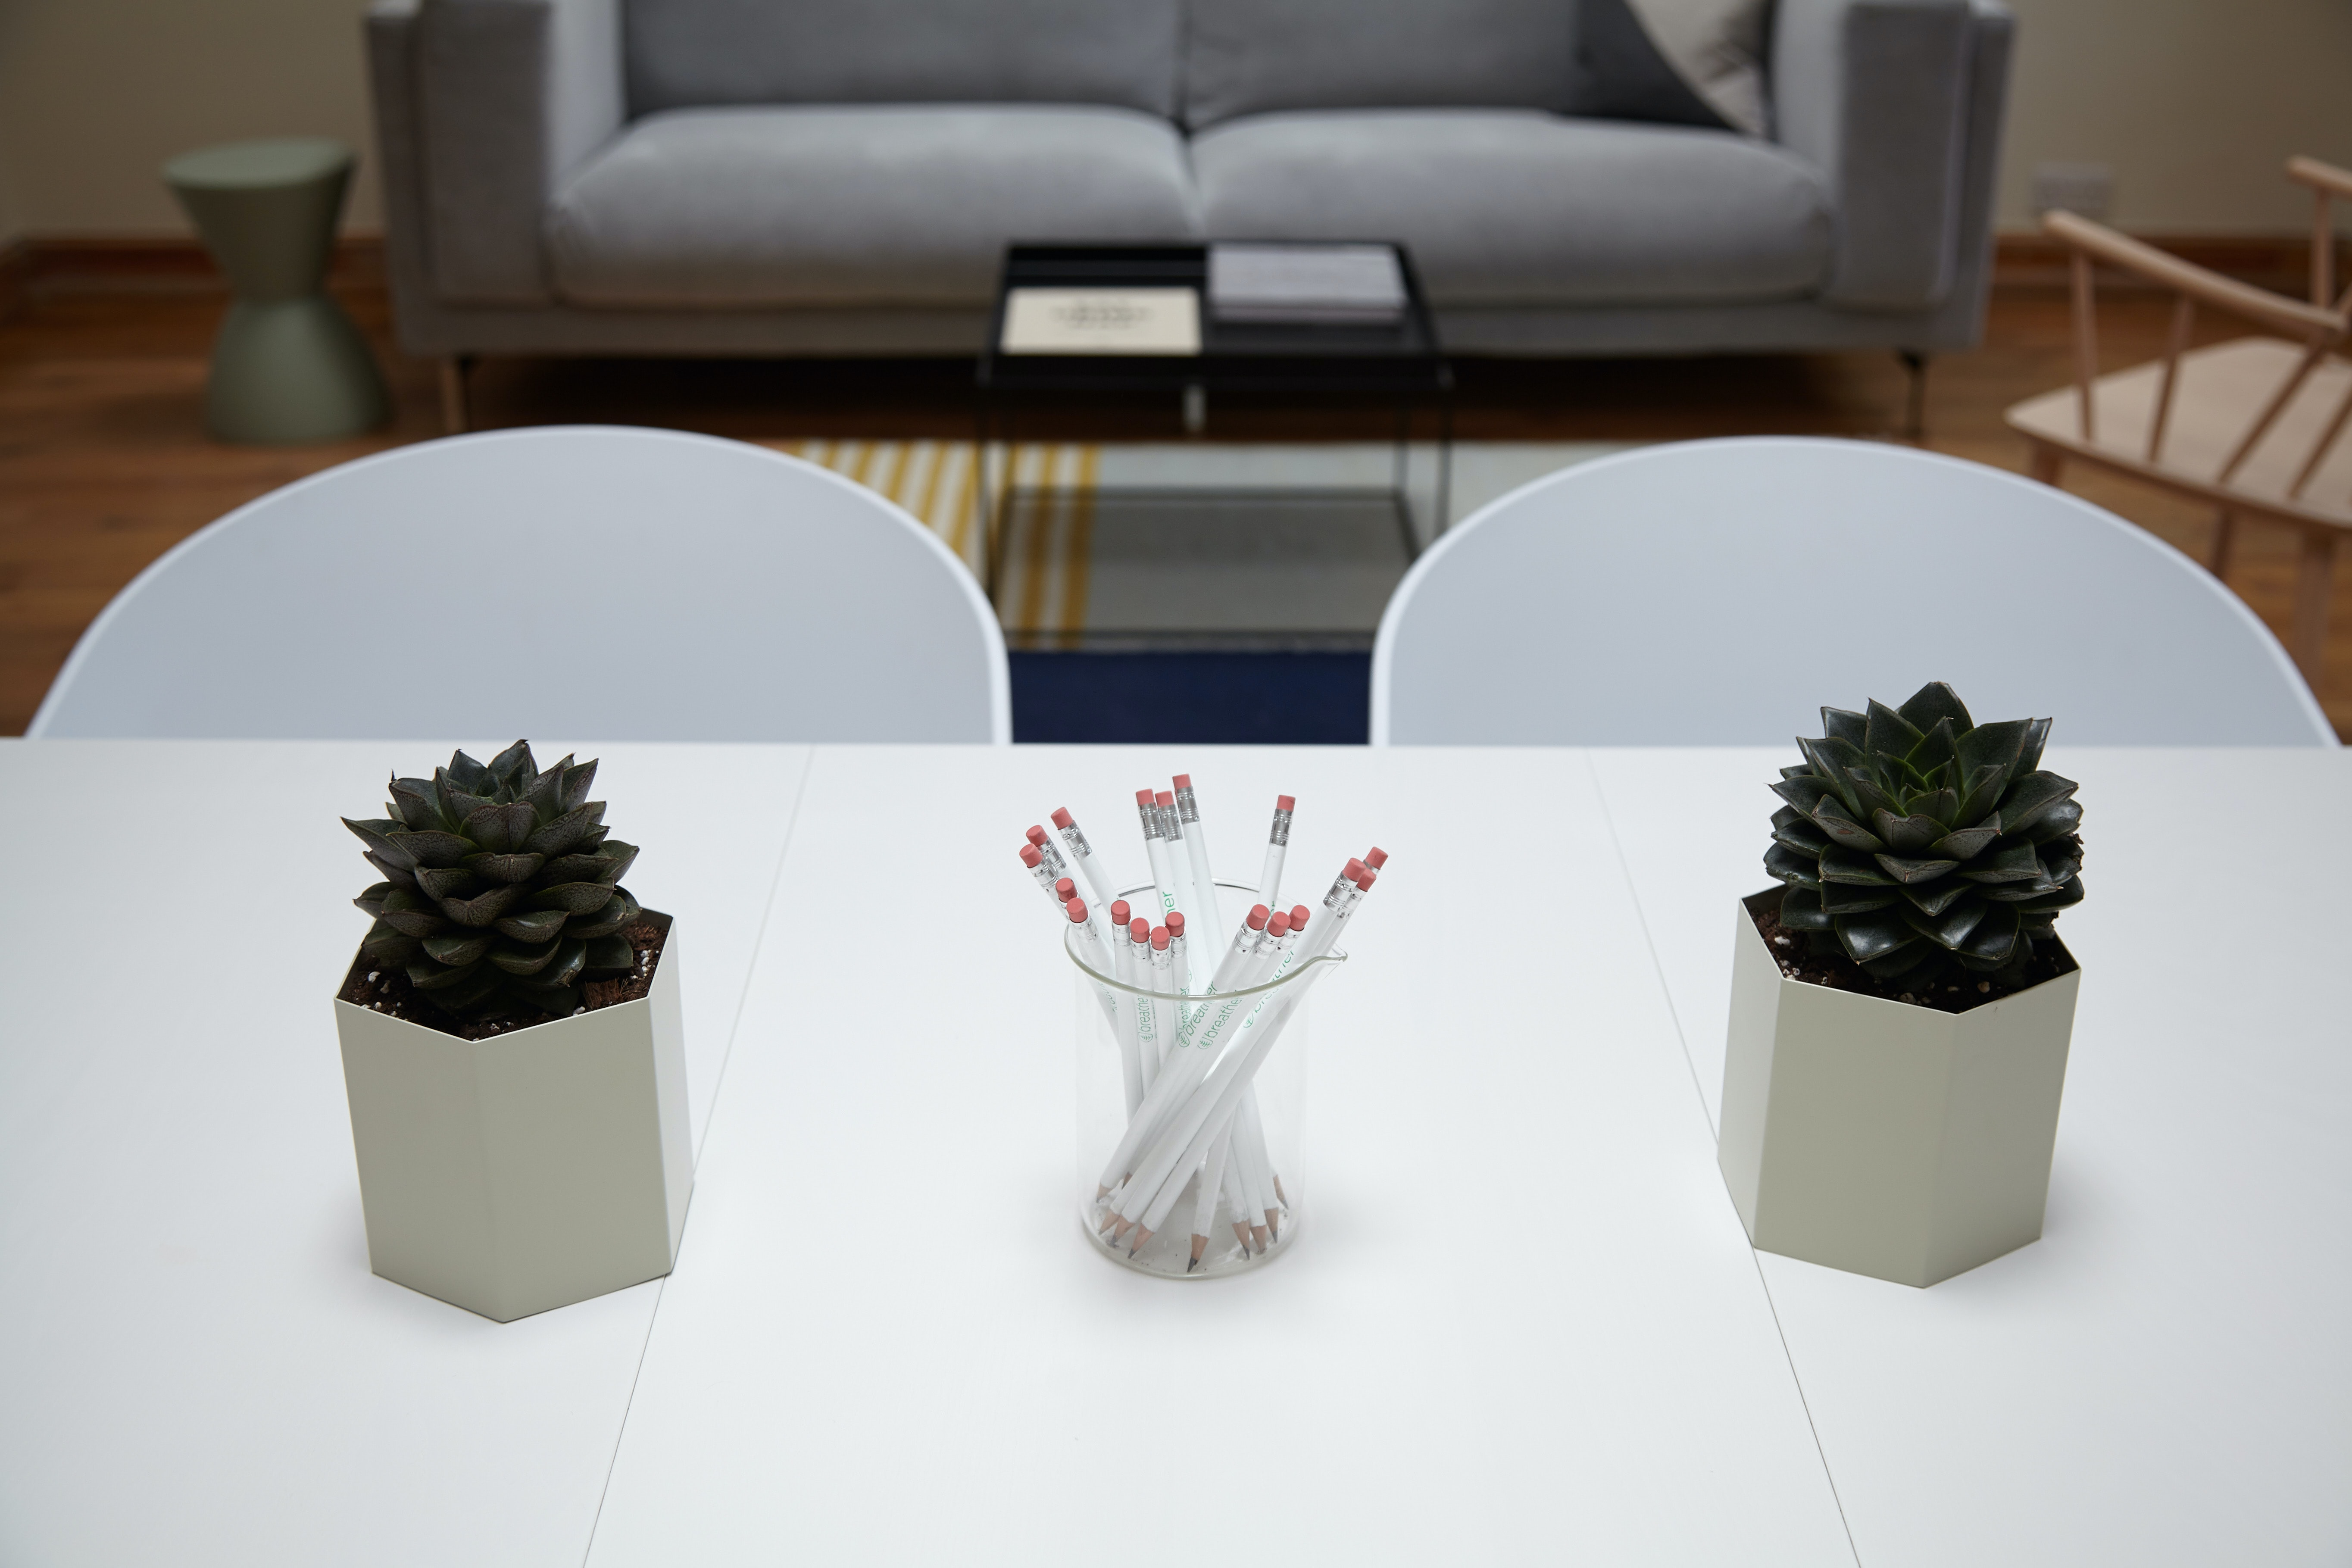 A cup full of pencils and two small potted plants on a white table in an office